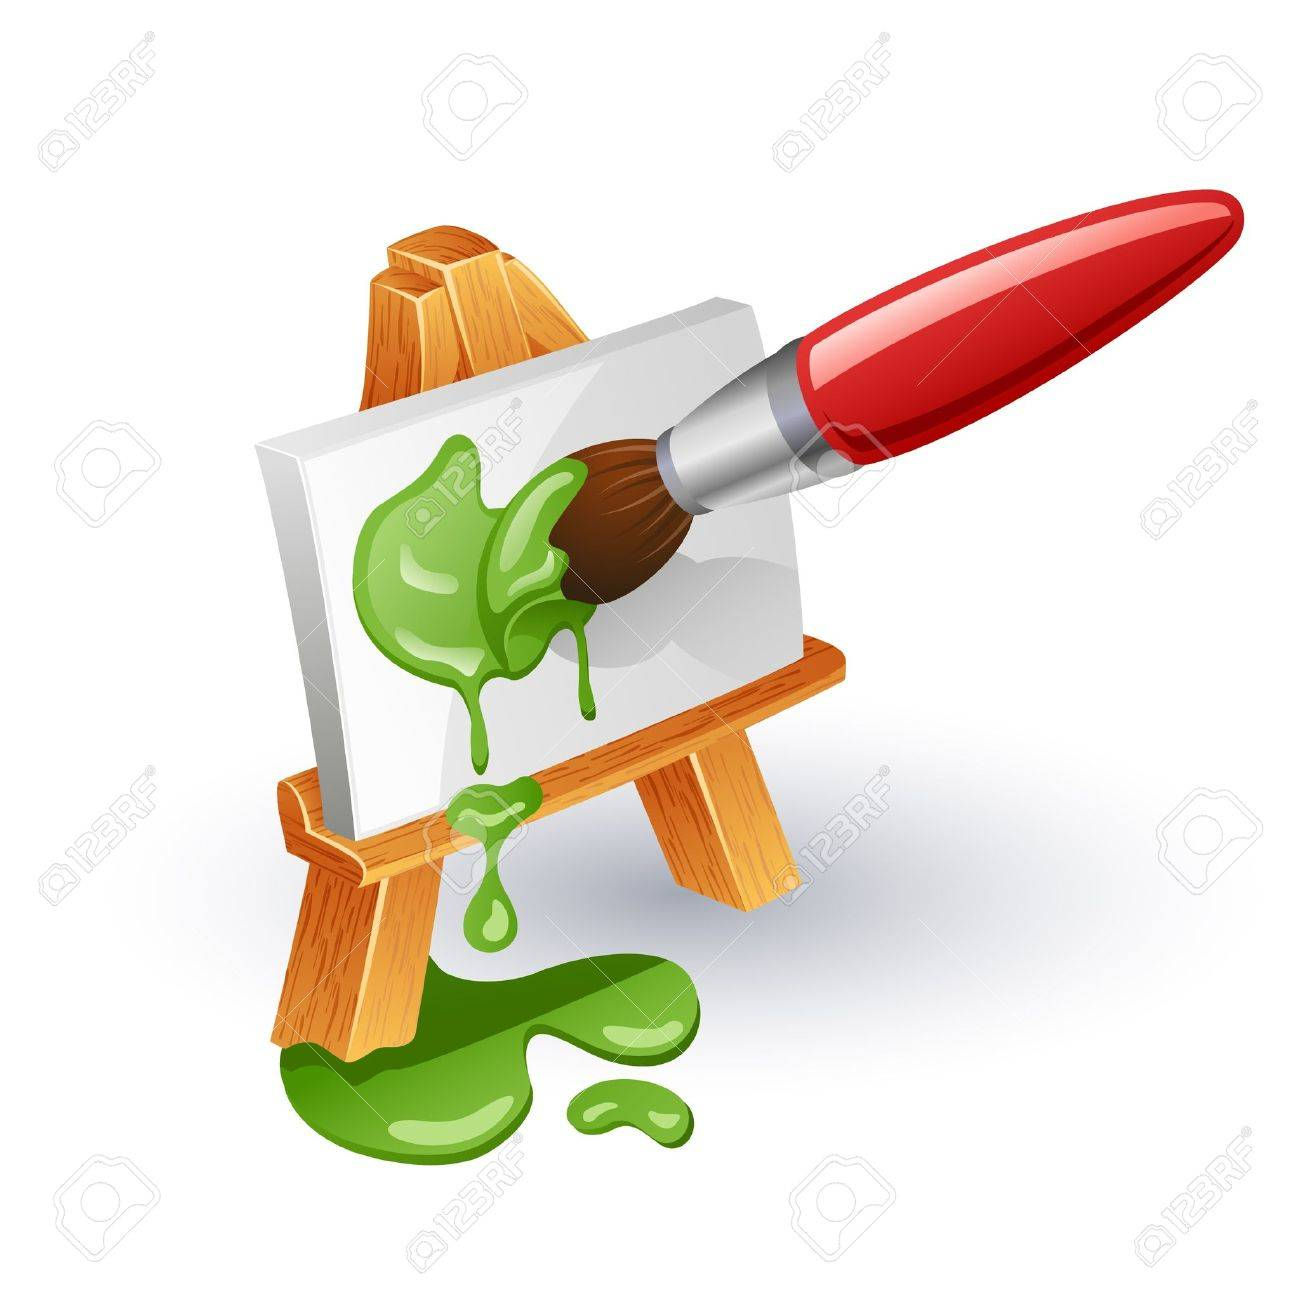 Easel and paintbrush. Paintbrush coloring canvas on easel isolated on white background. Stock Vector - 10697809